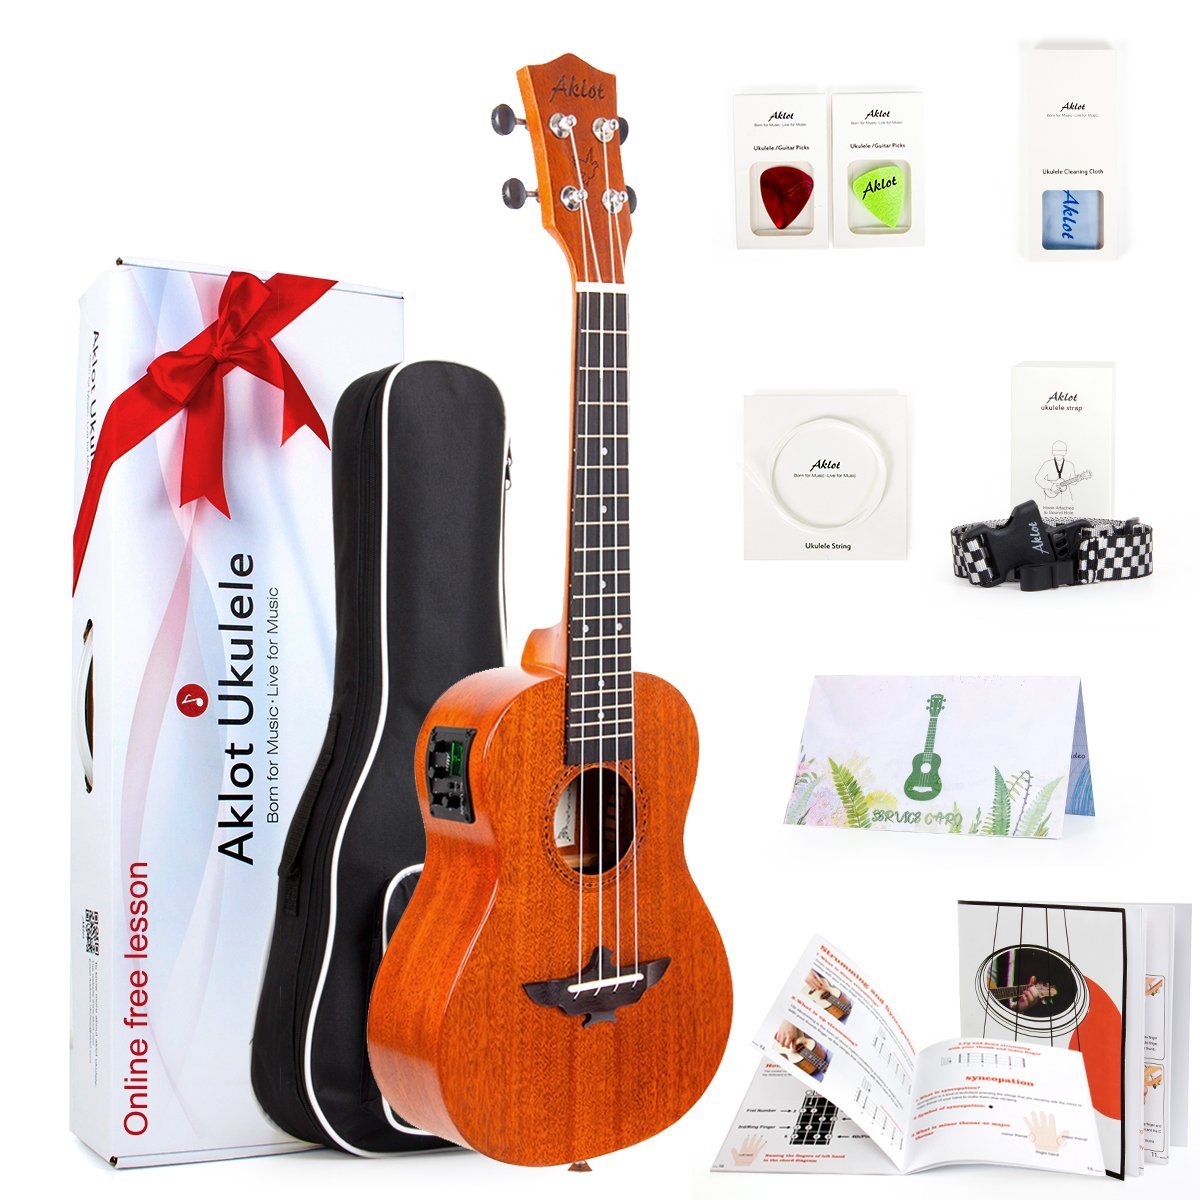 3. AKLOT Electric Acoustic Tenor Ukulele